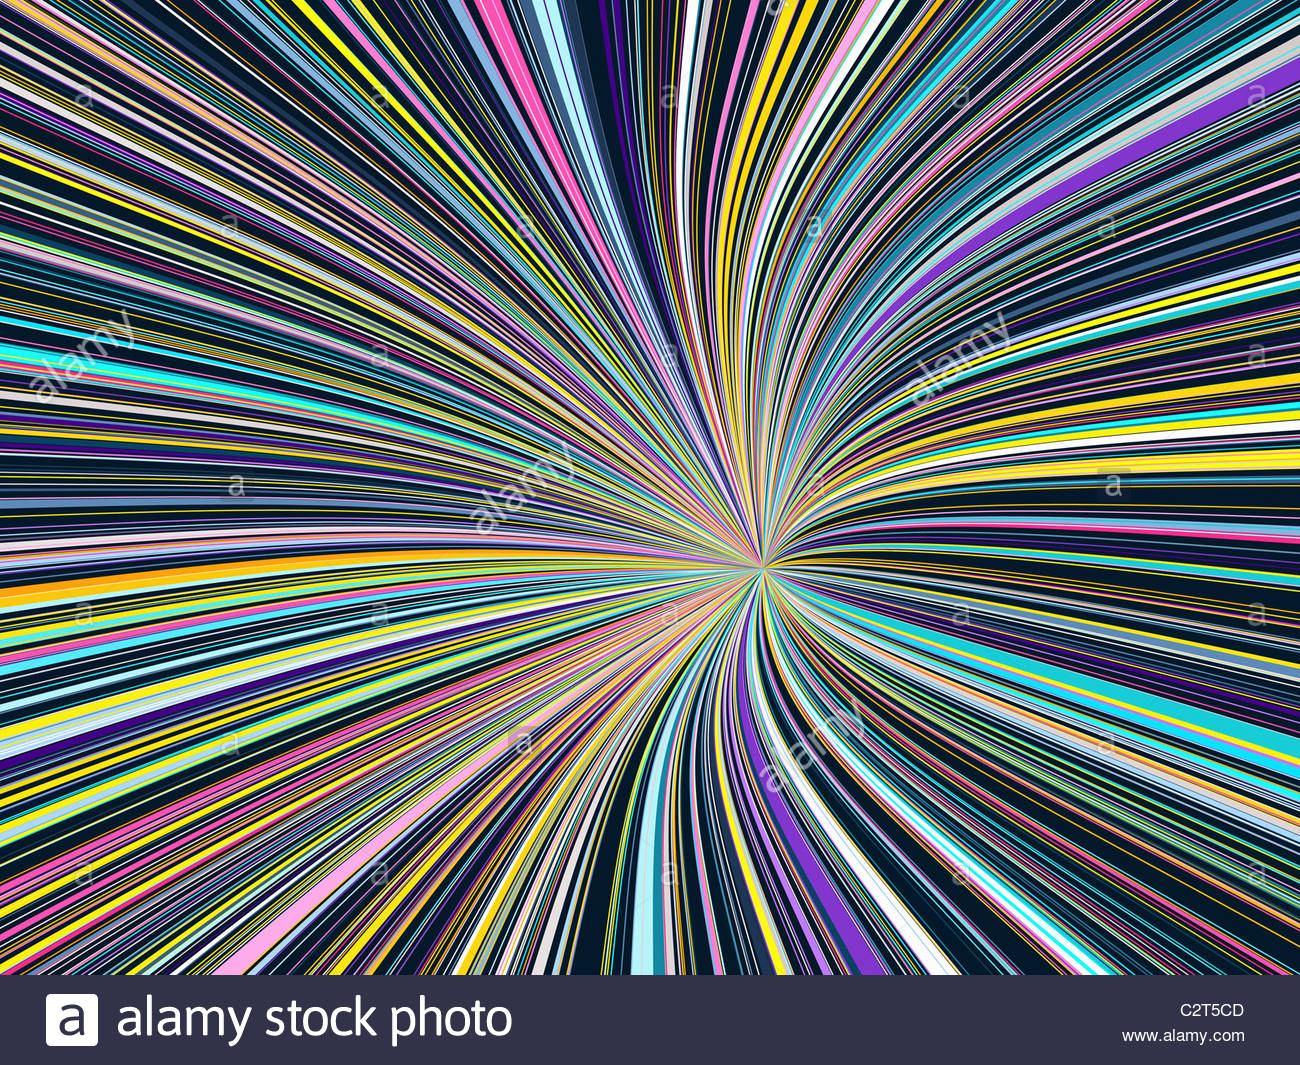 Abstract line shape with rainbow colors - Stock Image